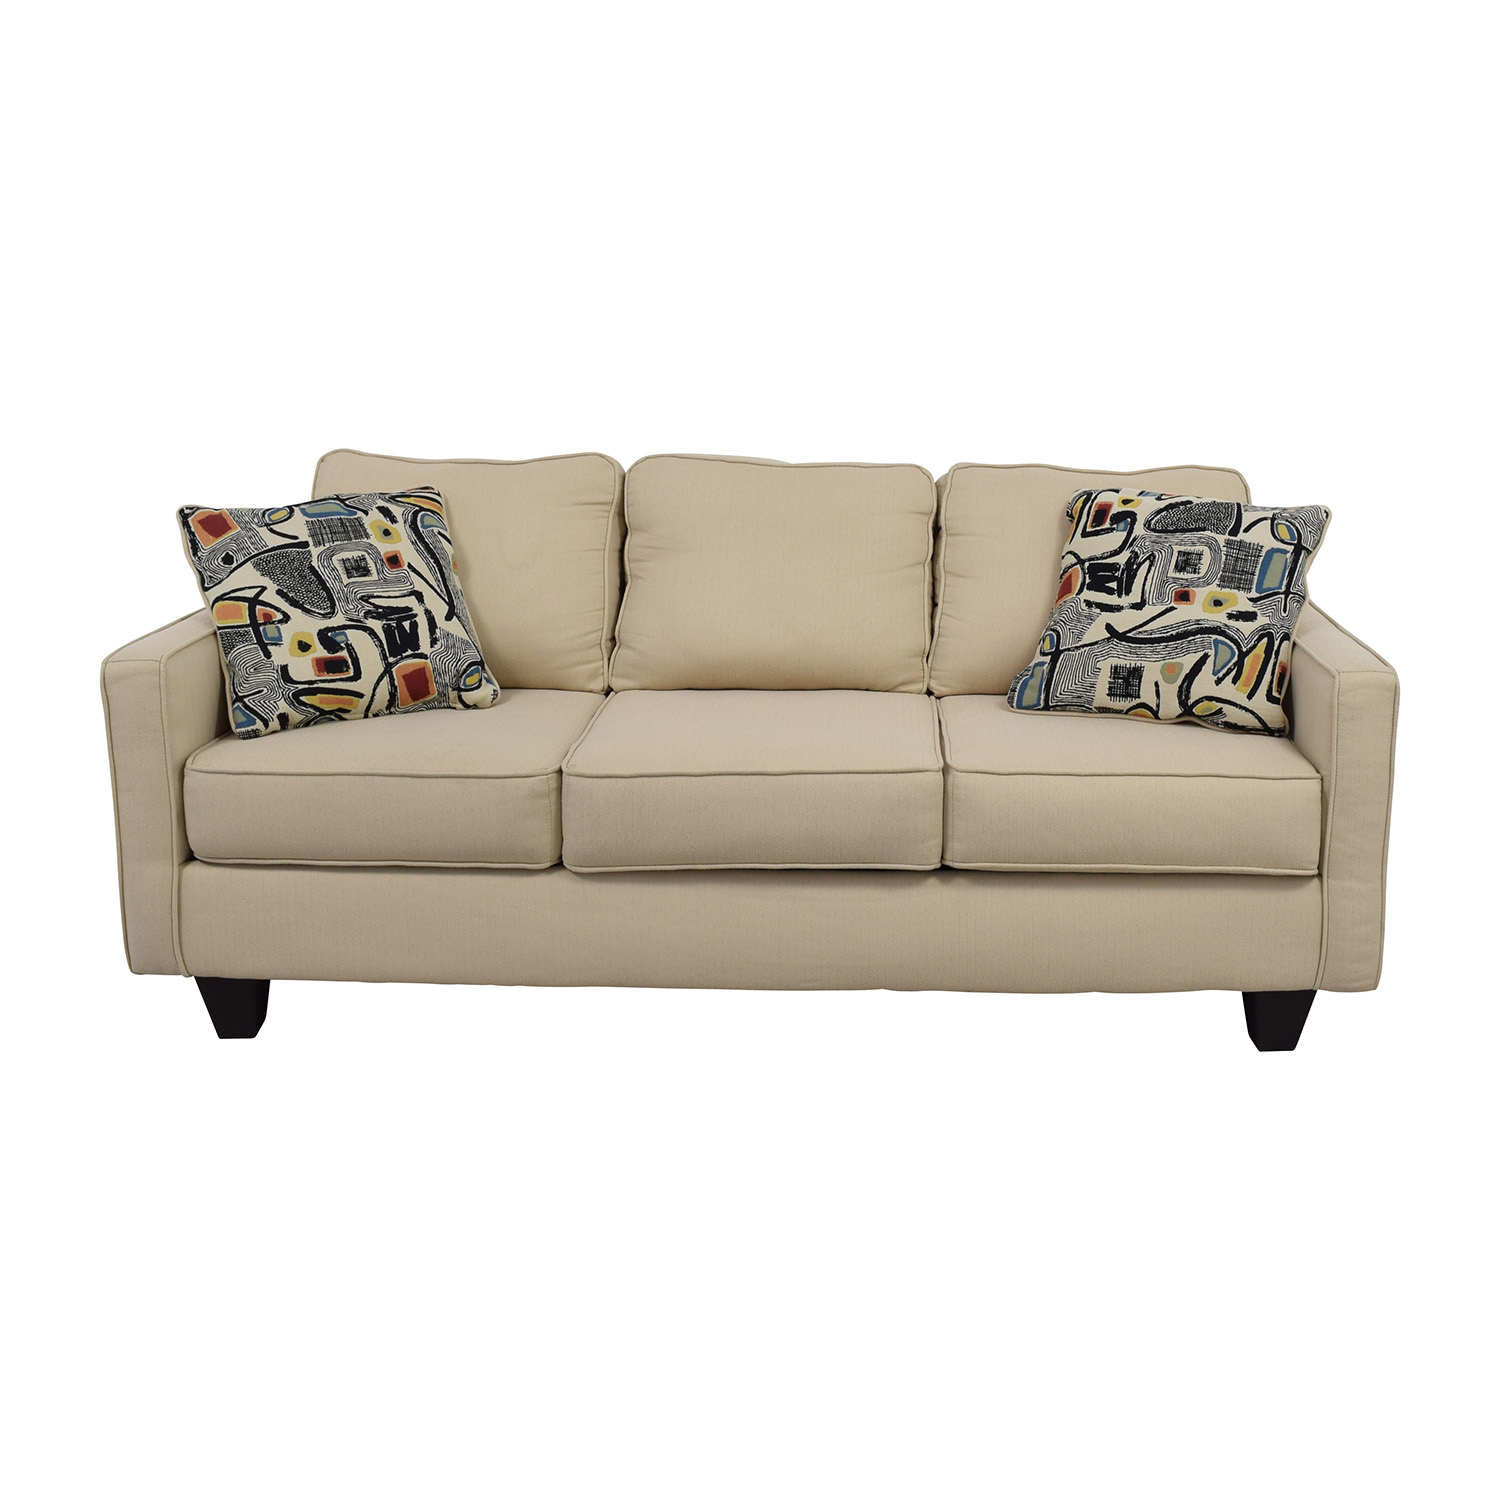 52 OFF Wayfair Wayfair AllModern Three Cushion Beige Couch with